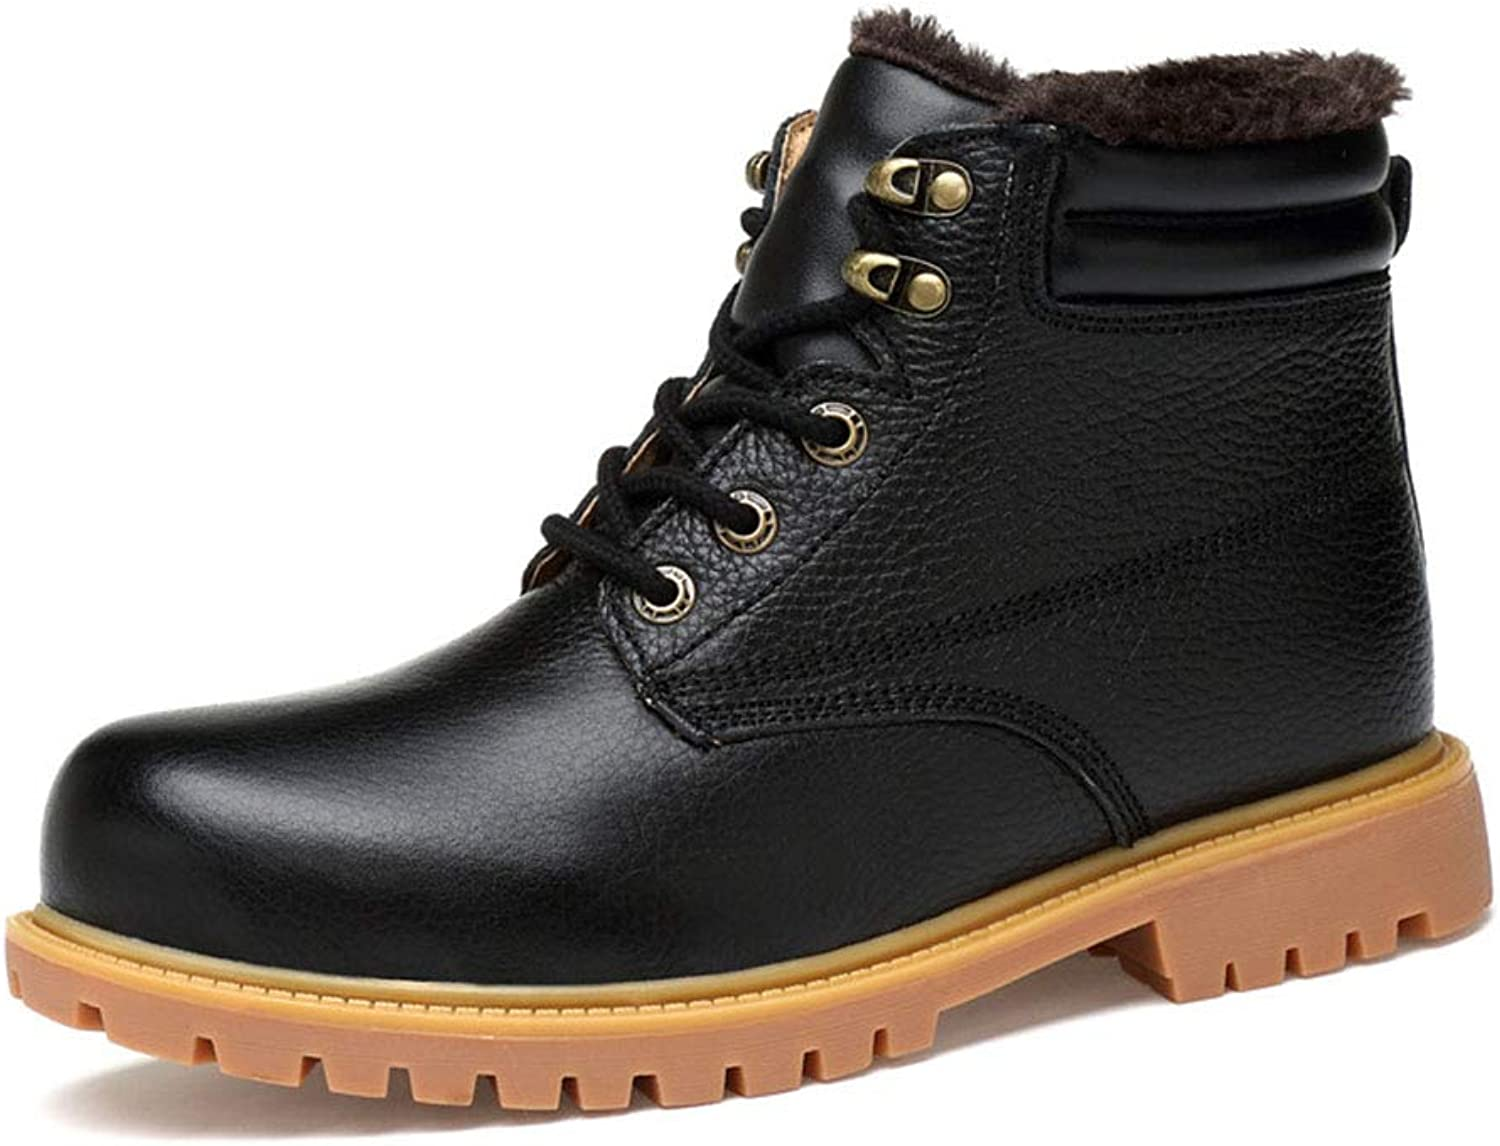 Men's shoes, Fall Winter New Leather High-Top Casual Plus Velvet Warm Cotton shoes Business Non-Slip Wear-Resistant Martin Boots,B,45